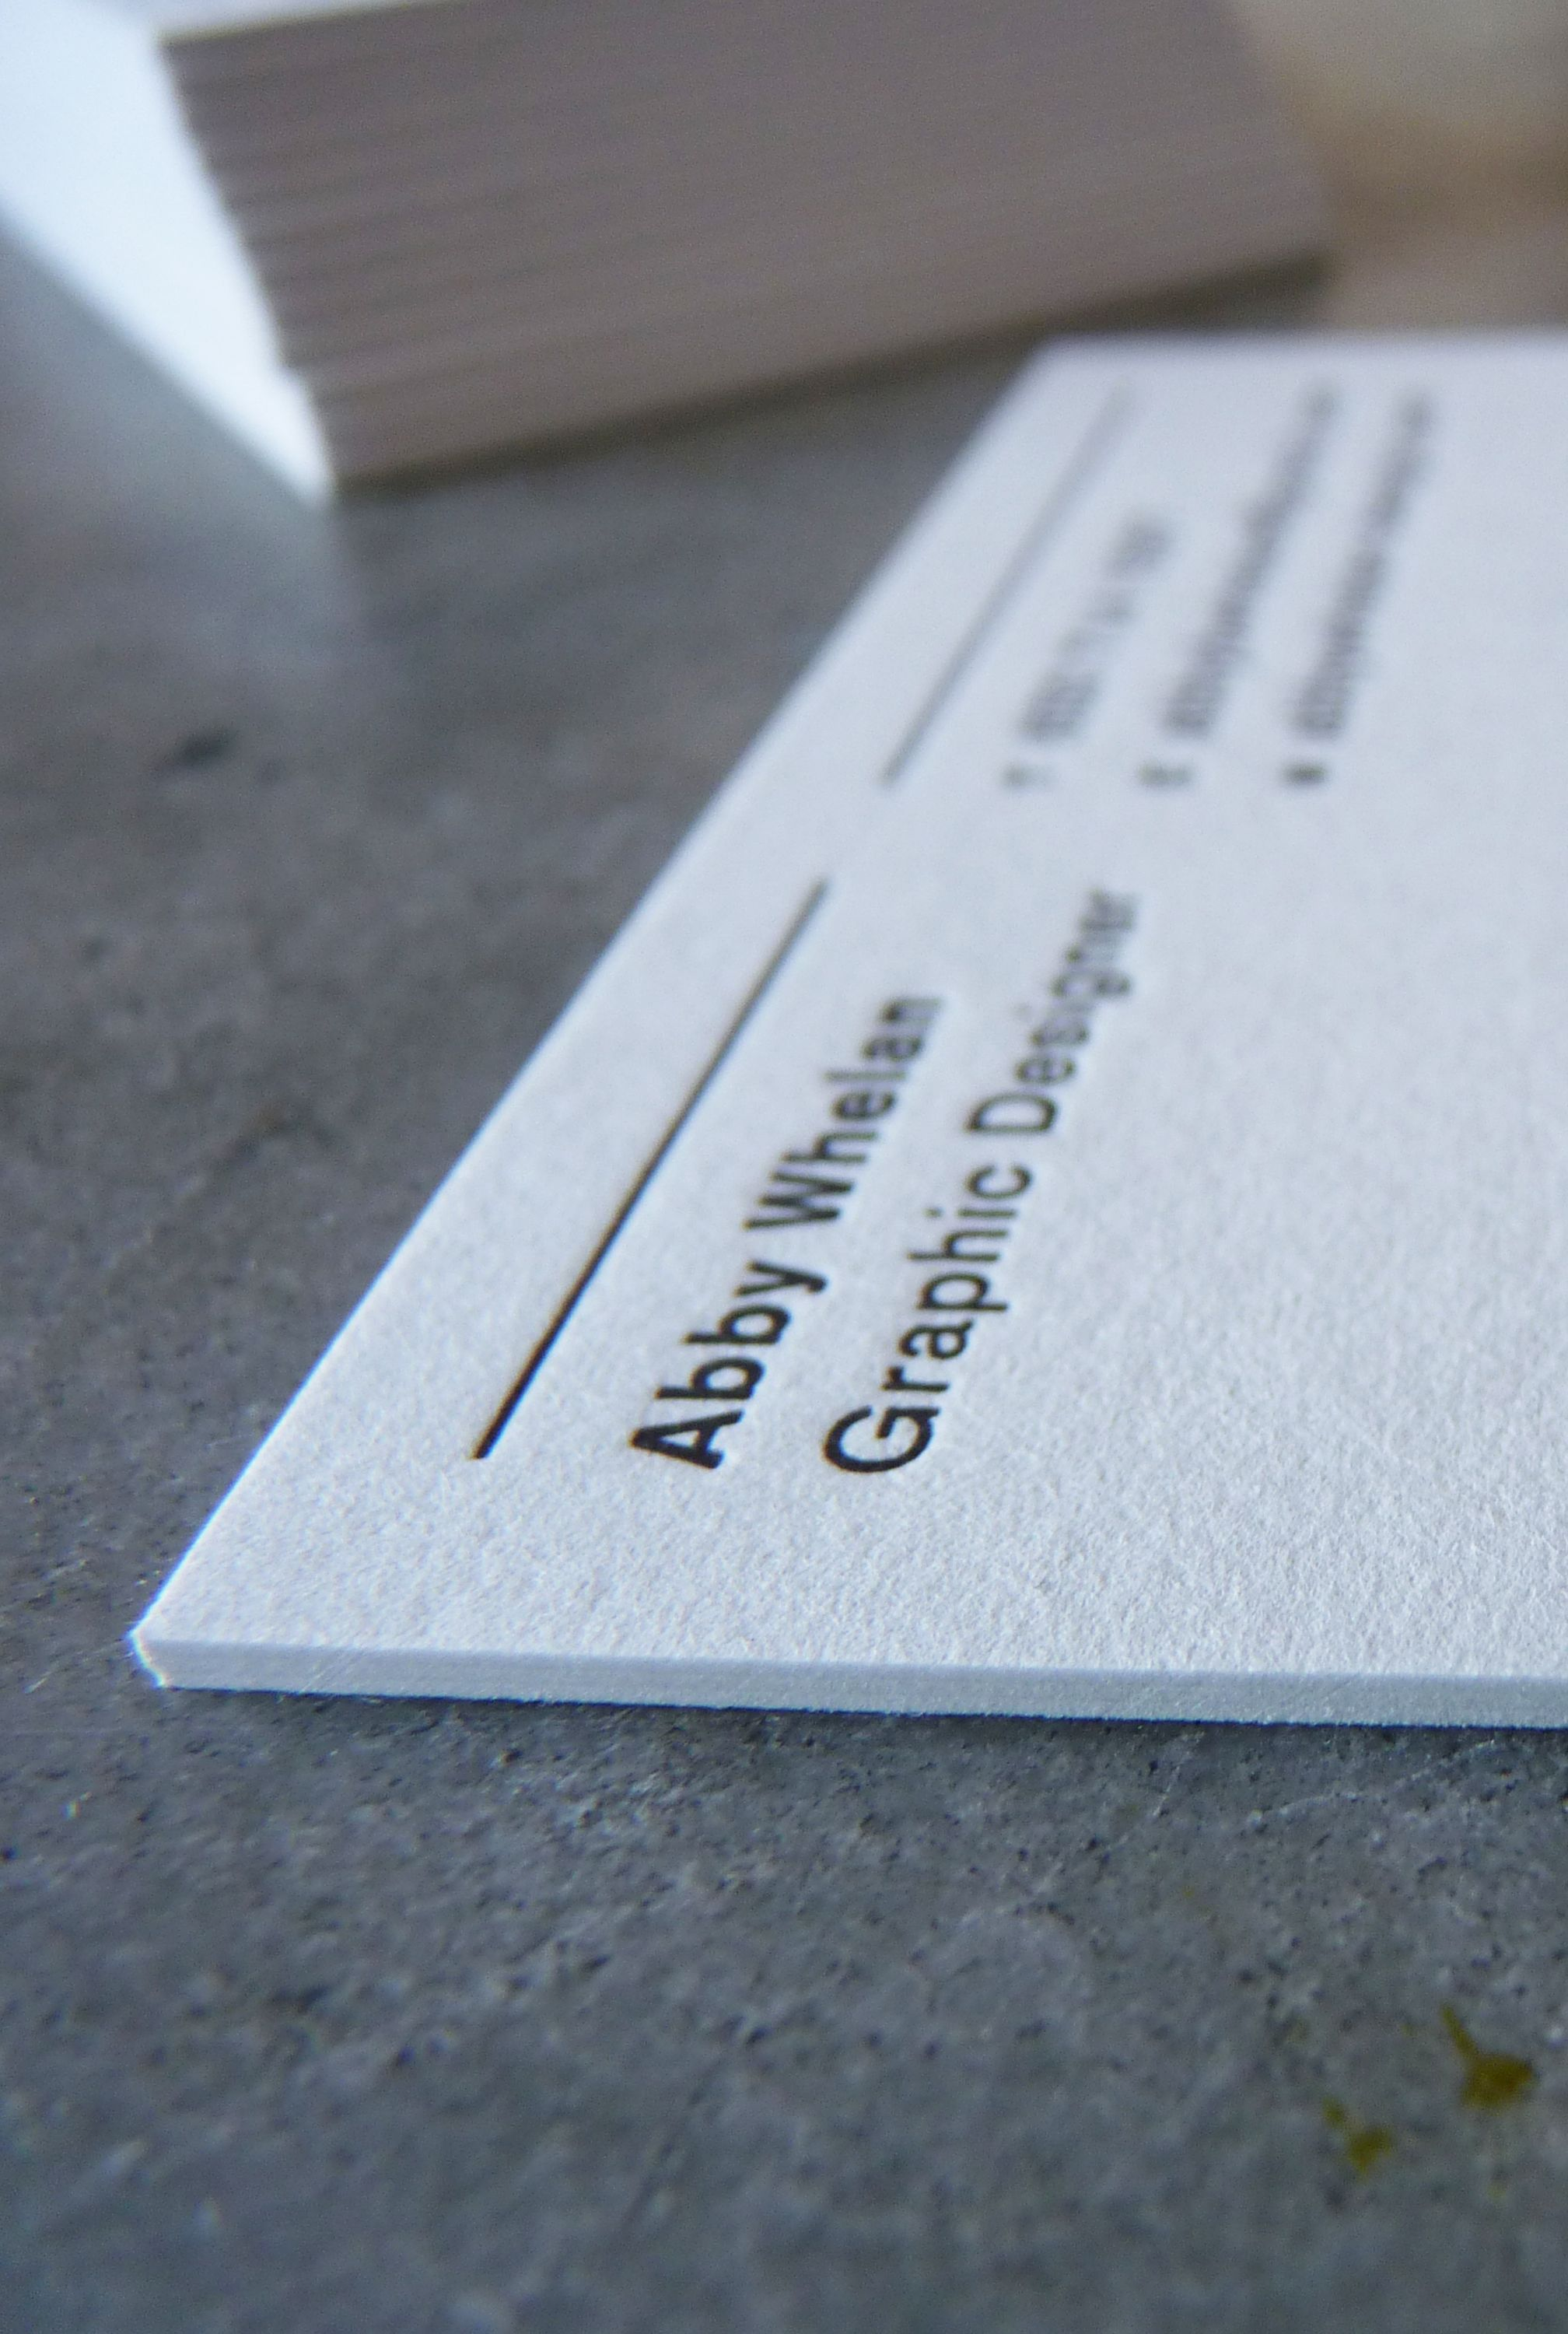 Letterpress printed business card in black ink on extra thick stock letterpress printing in san francisco skilled craftspeople custom design bespoke wedding invitations business cards and promotions classes and events colourmoves